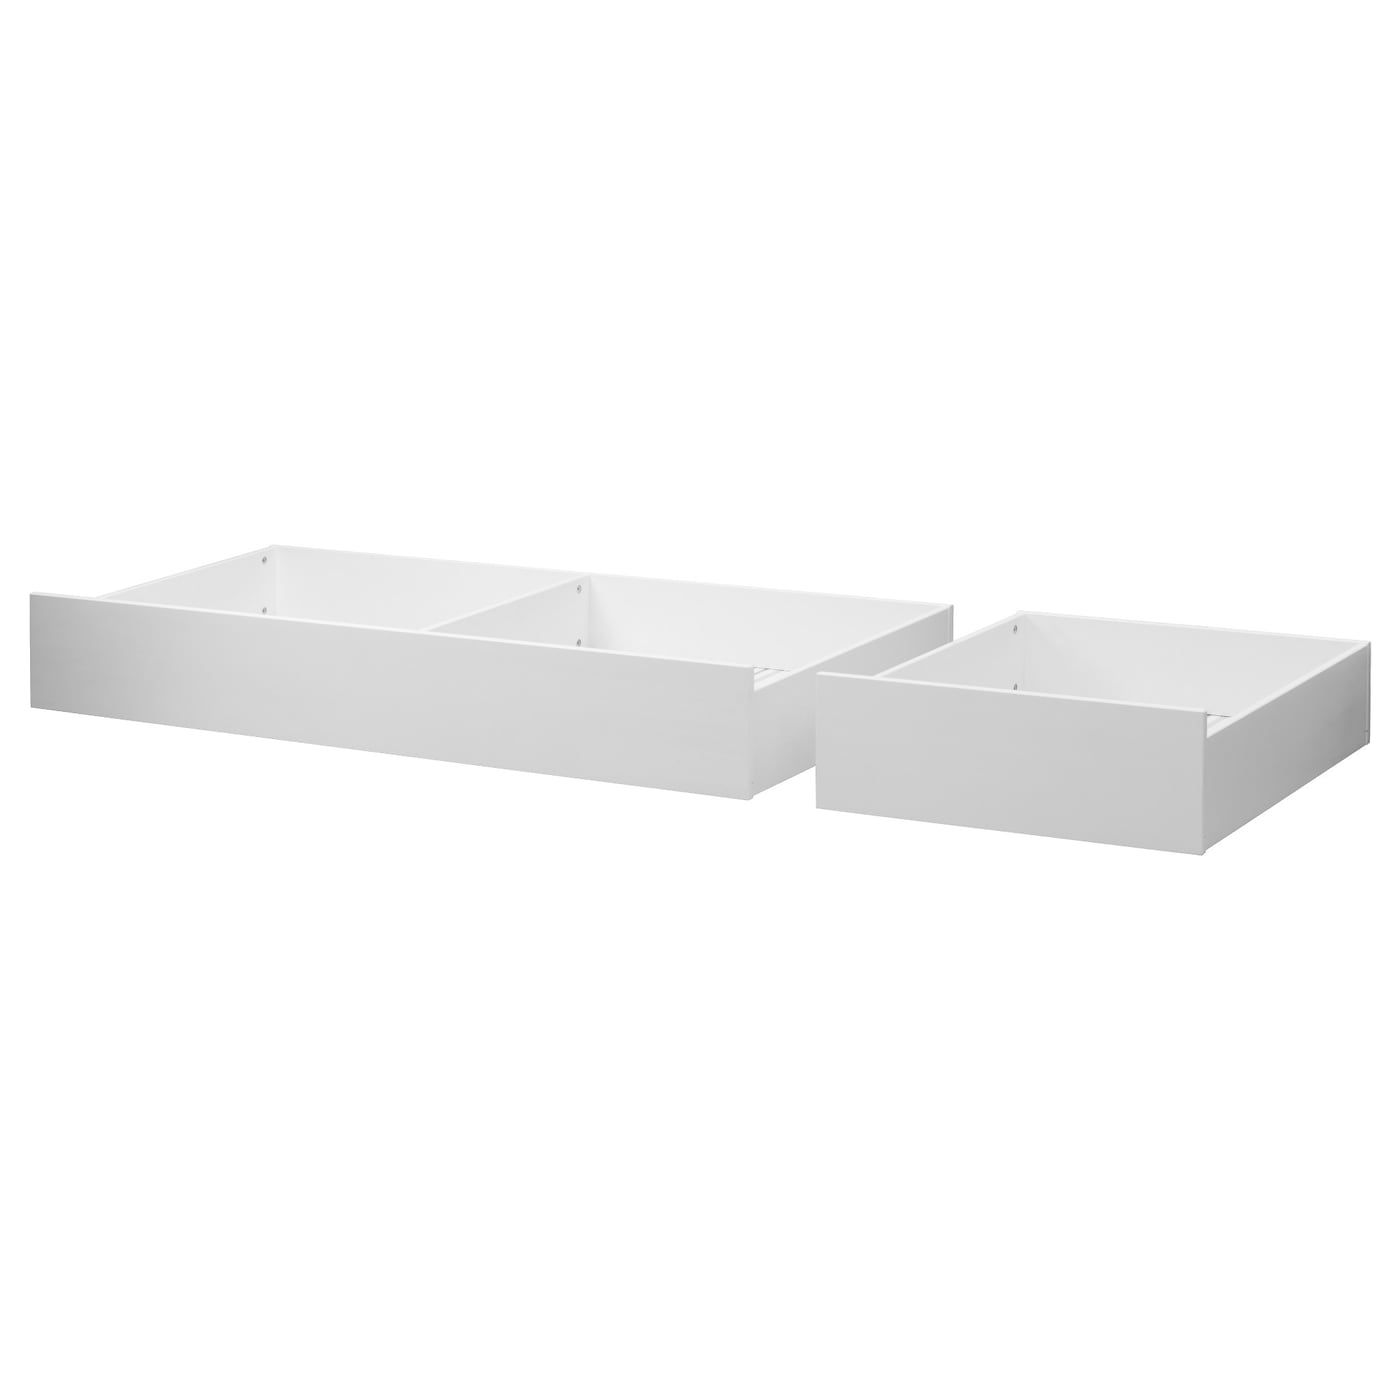 Hemnes Underbed Storage Box Set Of 2 White Stain White Stained